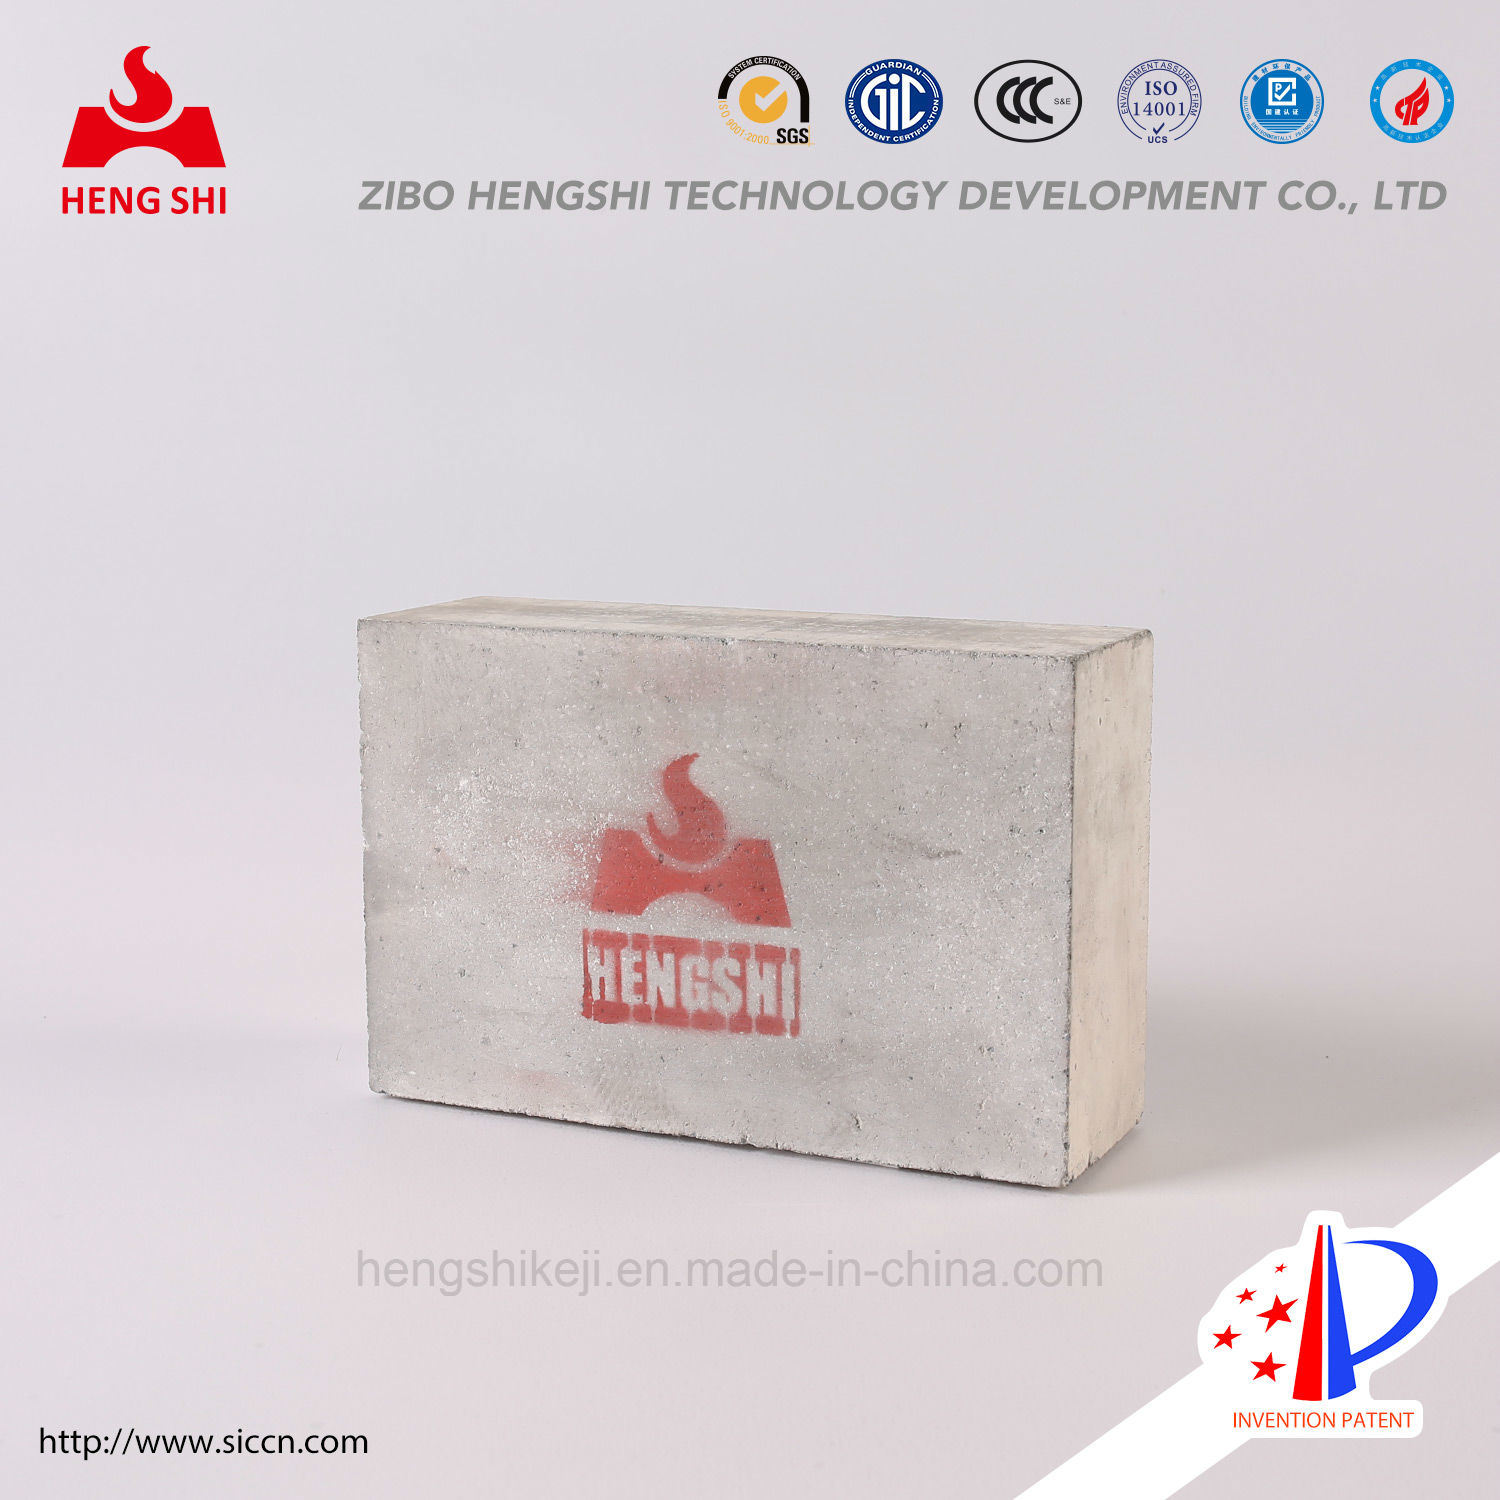 LG-38 Silicon Nitride Bonded Silicon Carbide Brick